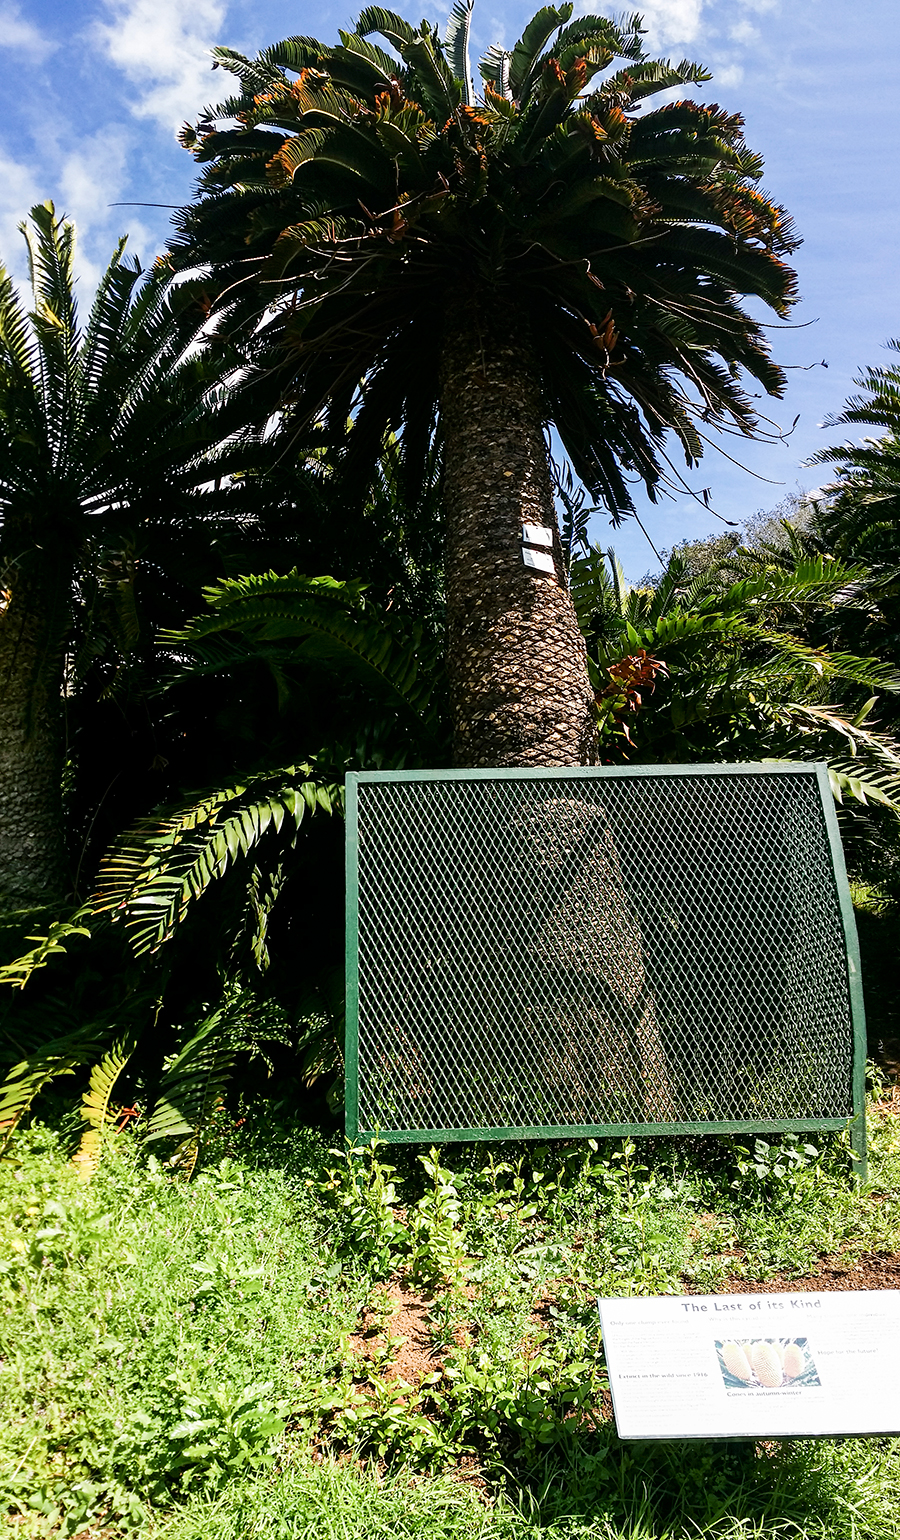 Last cycad of its kind at Kirstenbosch, South Africa.